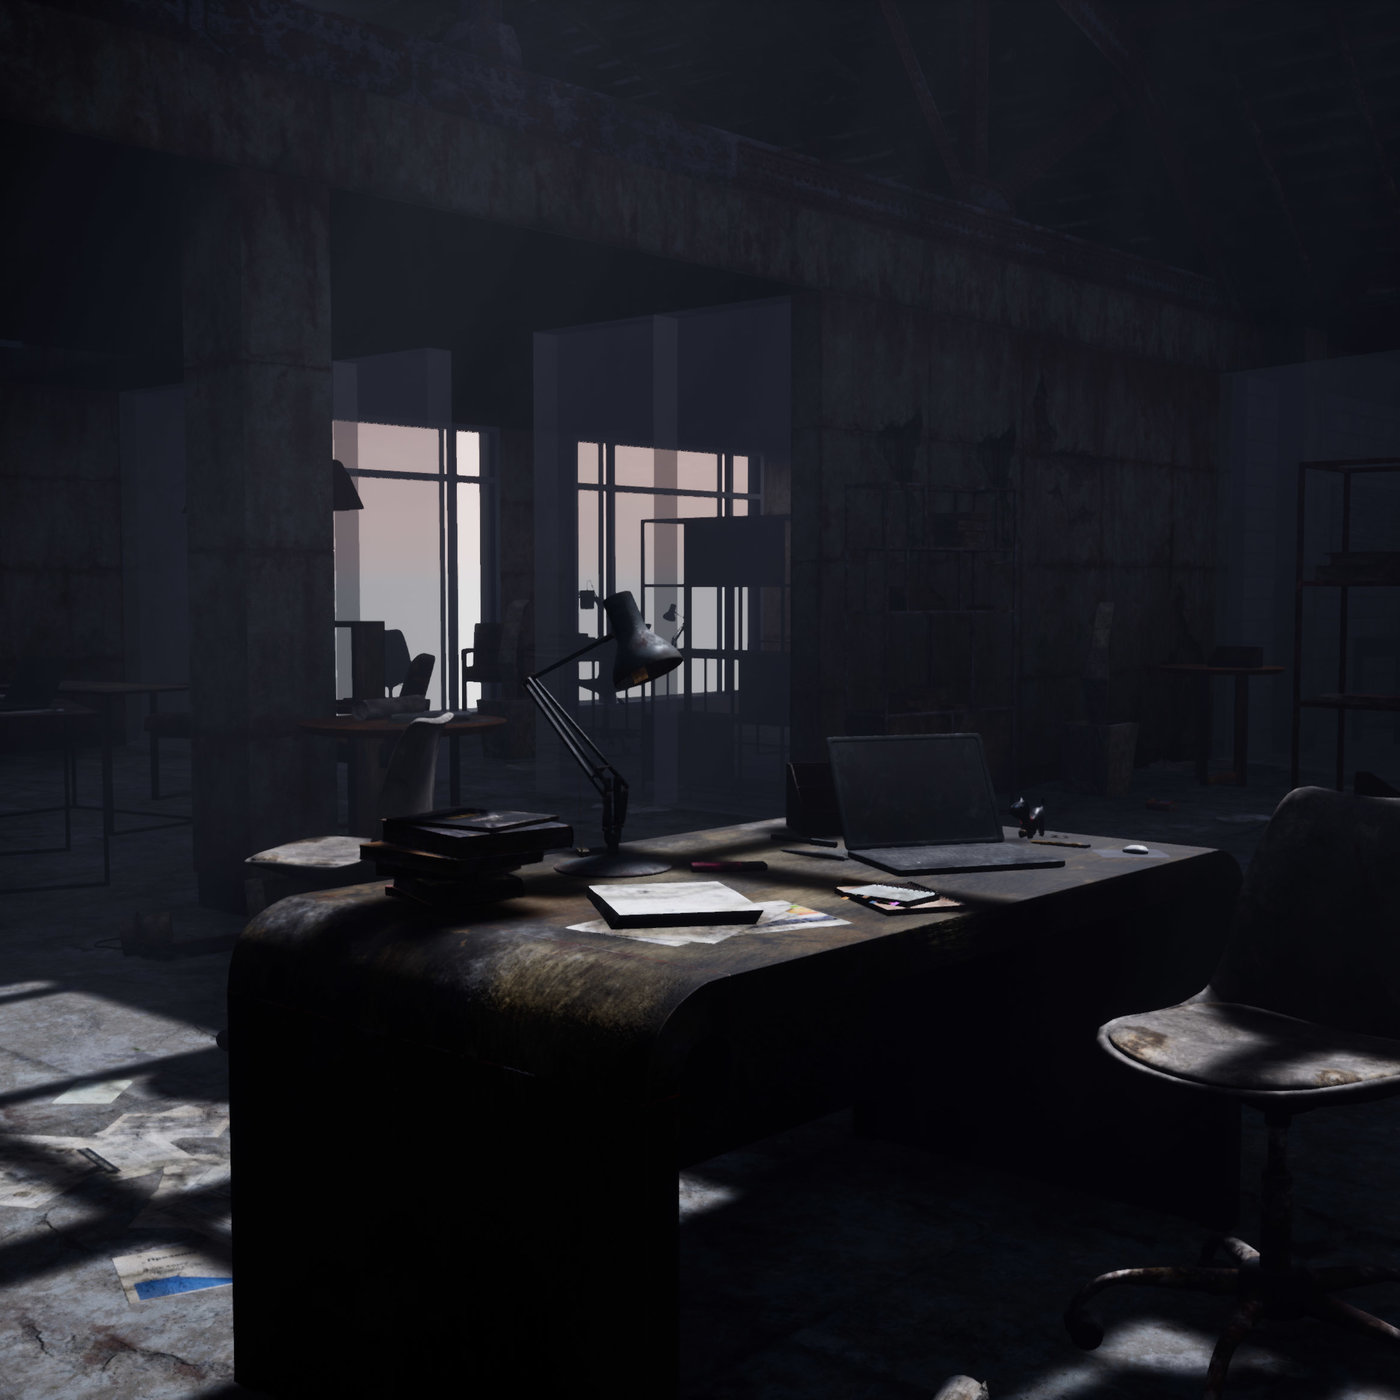 Post-apocalyptic scene in UE4